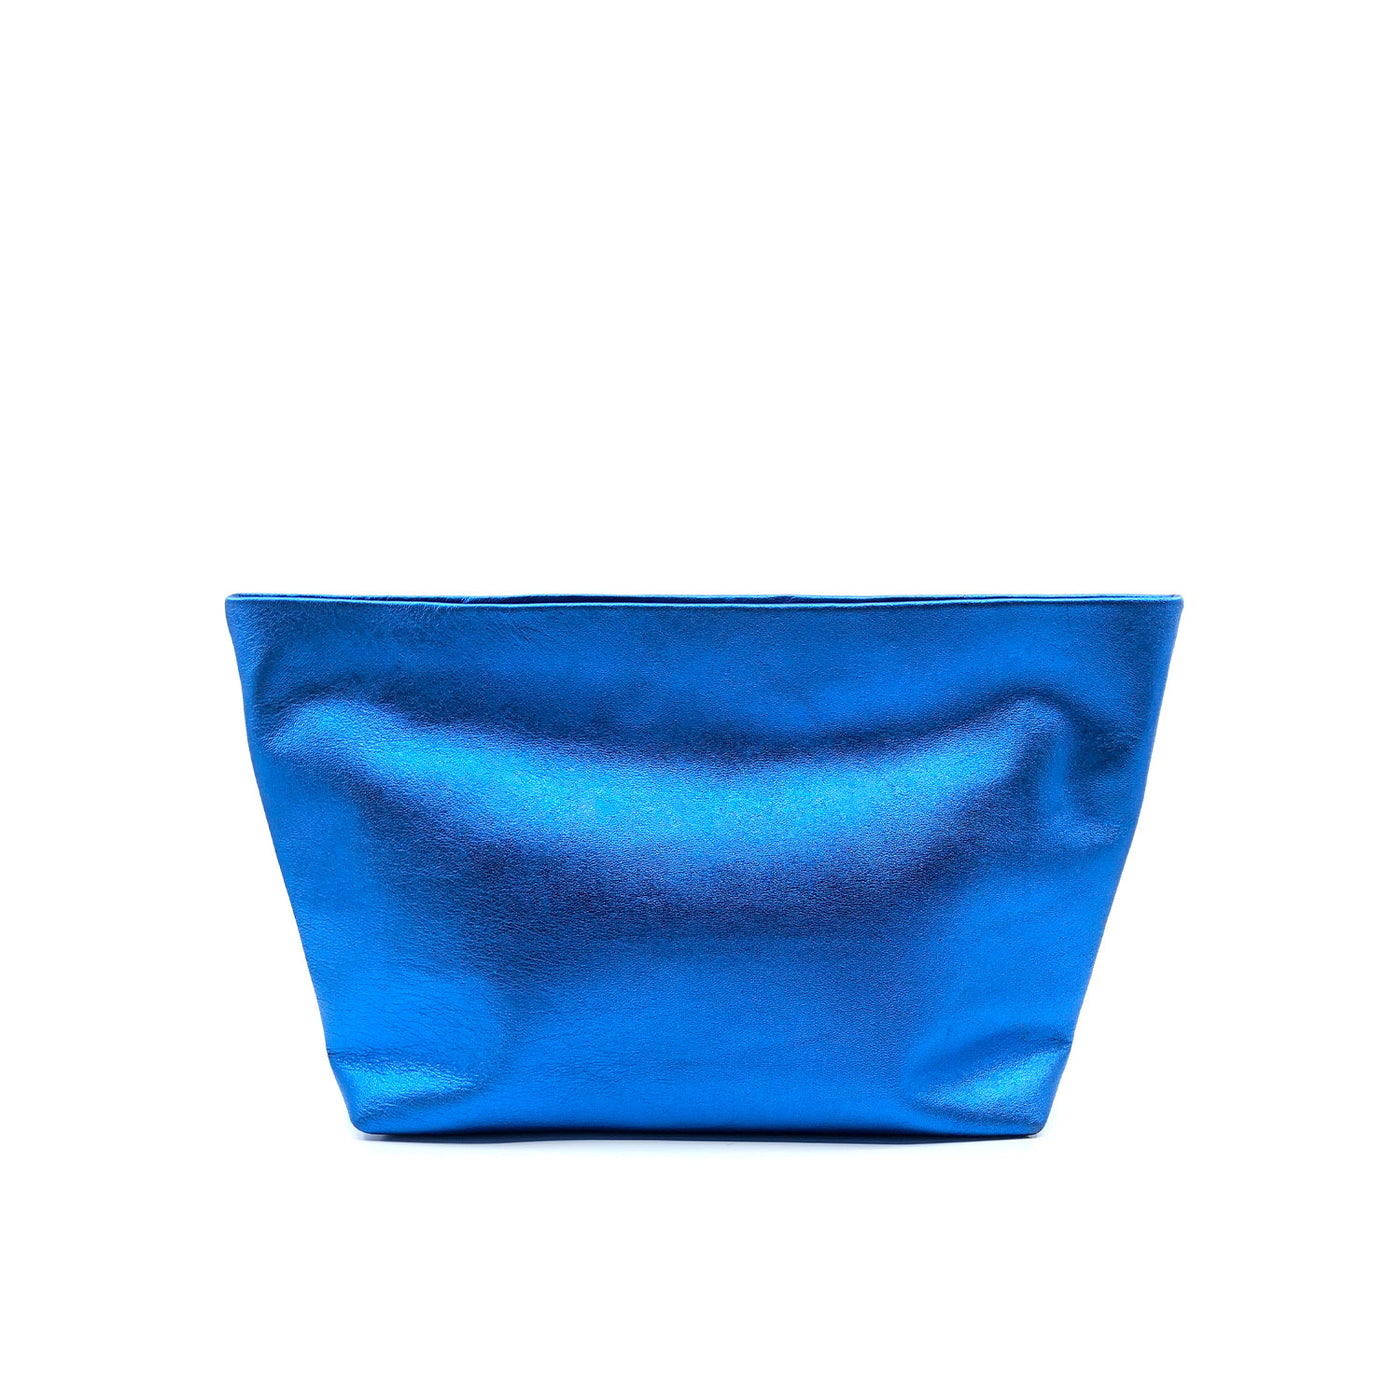 Austin Basics Deluxe Blue Leather Clutch